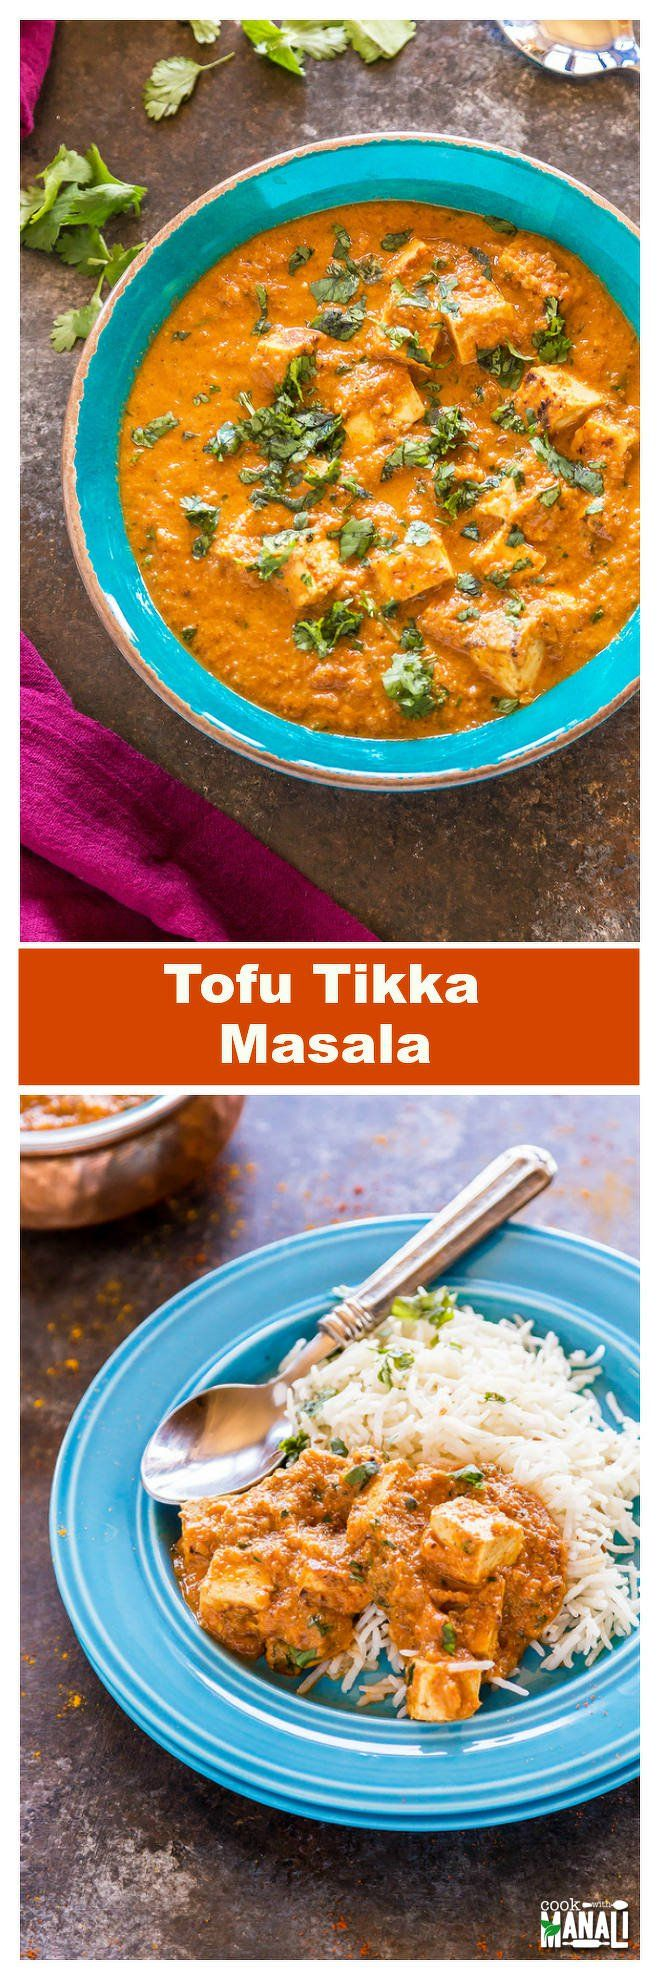 Delicious Tofu Tikka Masala is a vegetarian curry which is best enjoyed with naan, rice or any flatbread of your choice! Gluten-free!